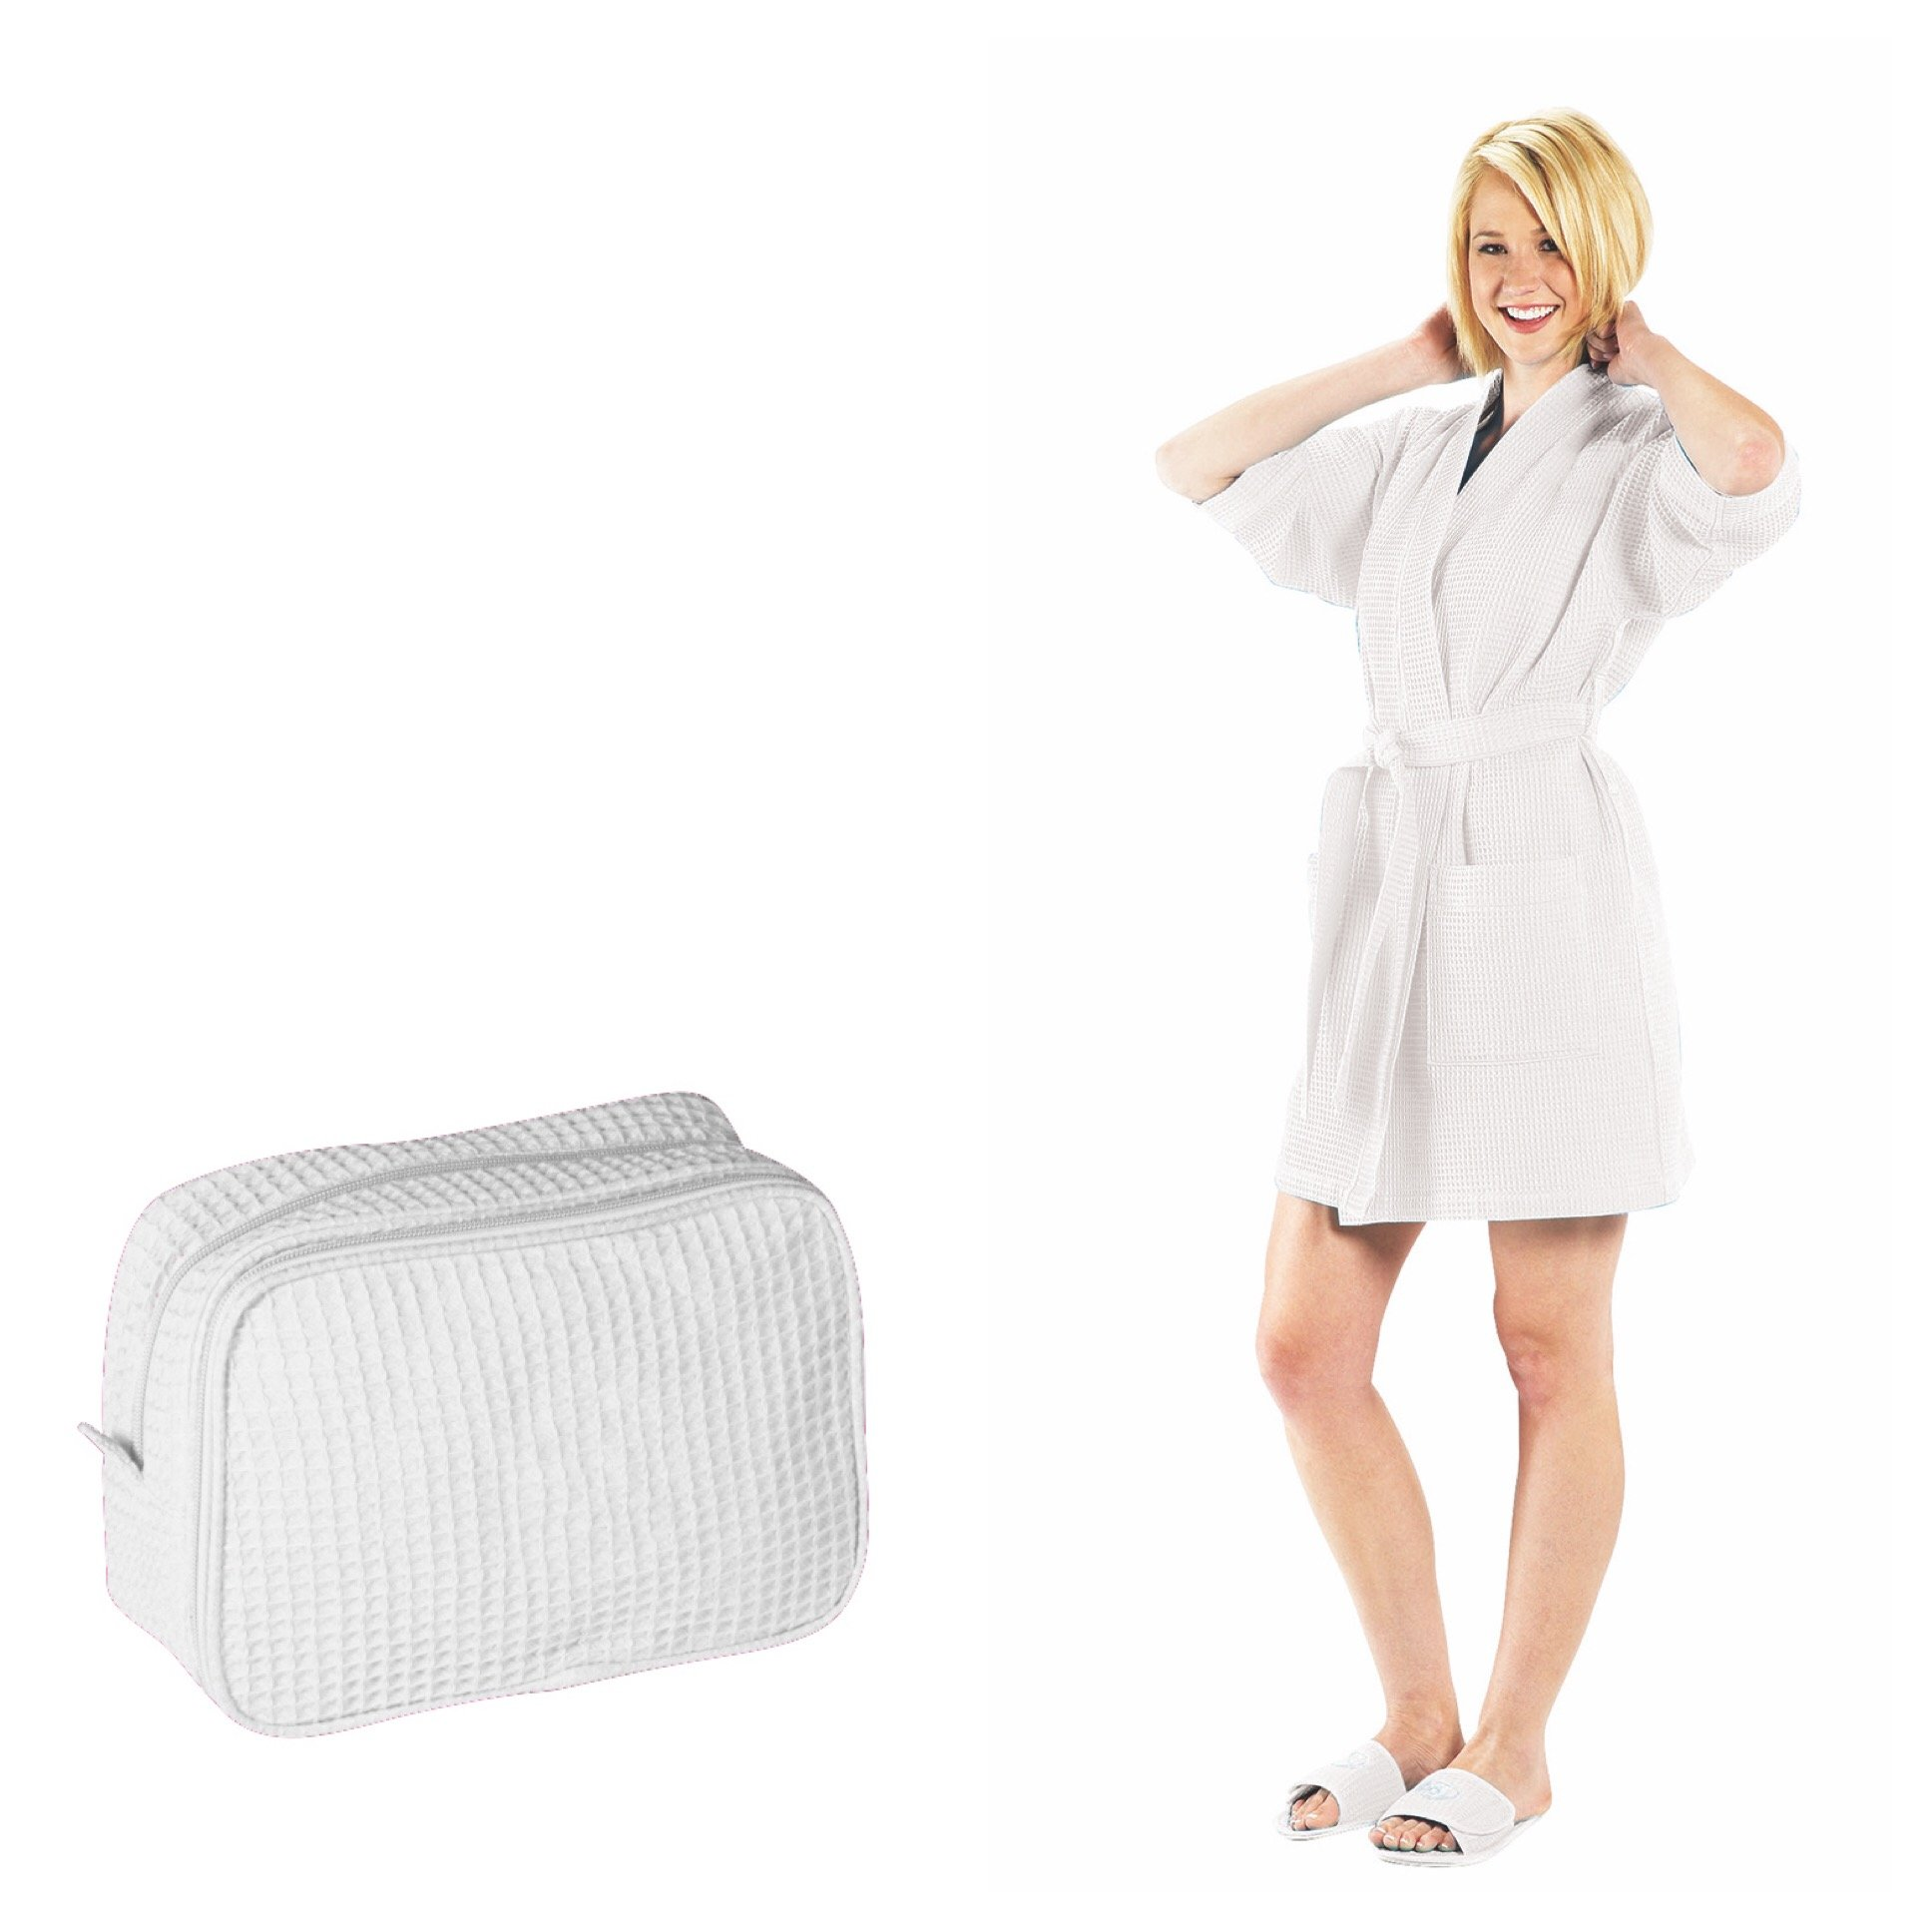 NobleHomeShop Women's Waffle Weave Thigh Length Bathrobe and Make-Up Bag (BUNDLE! Perfect For College!) (One Size, White)